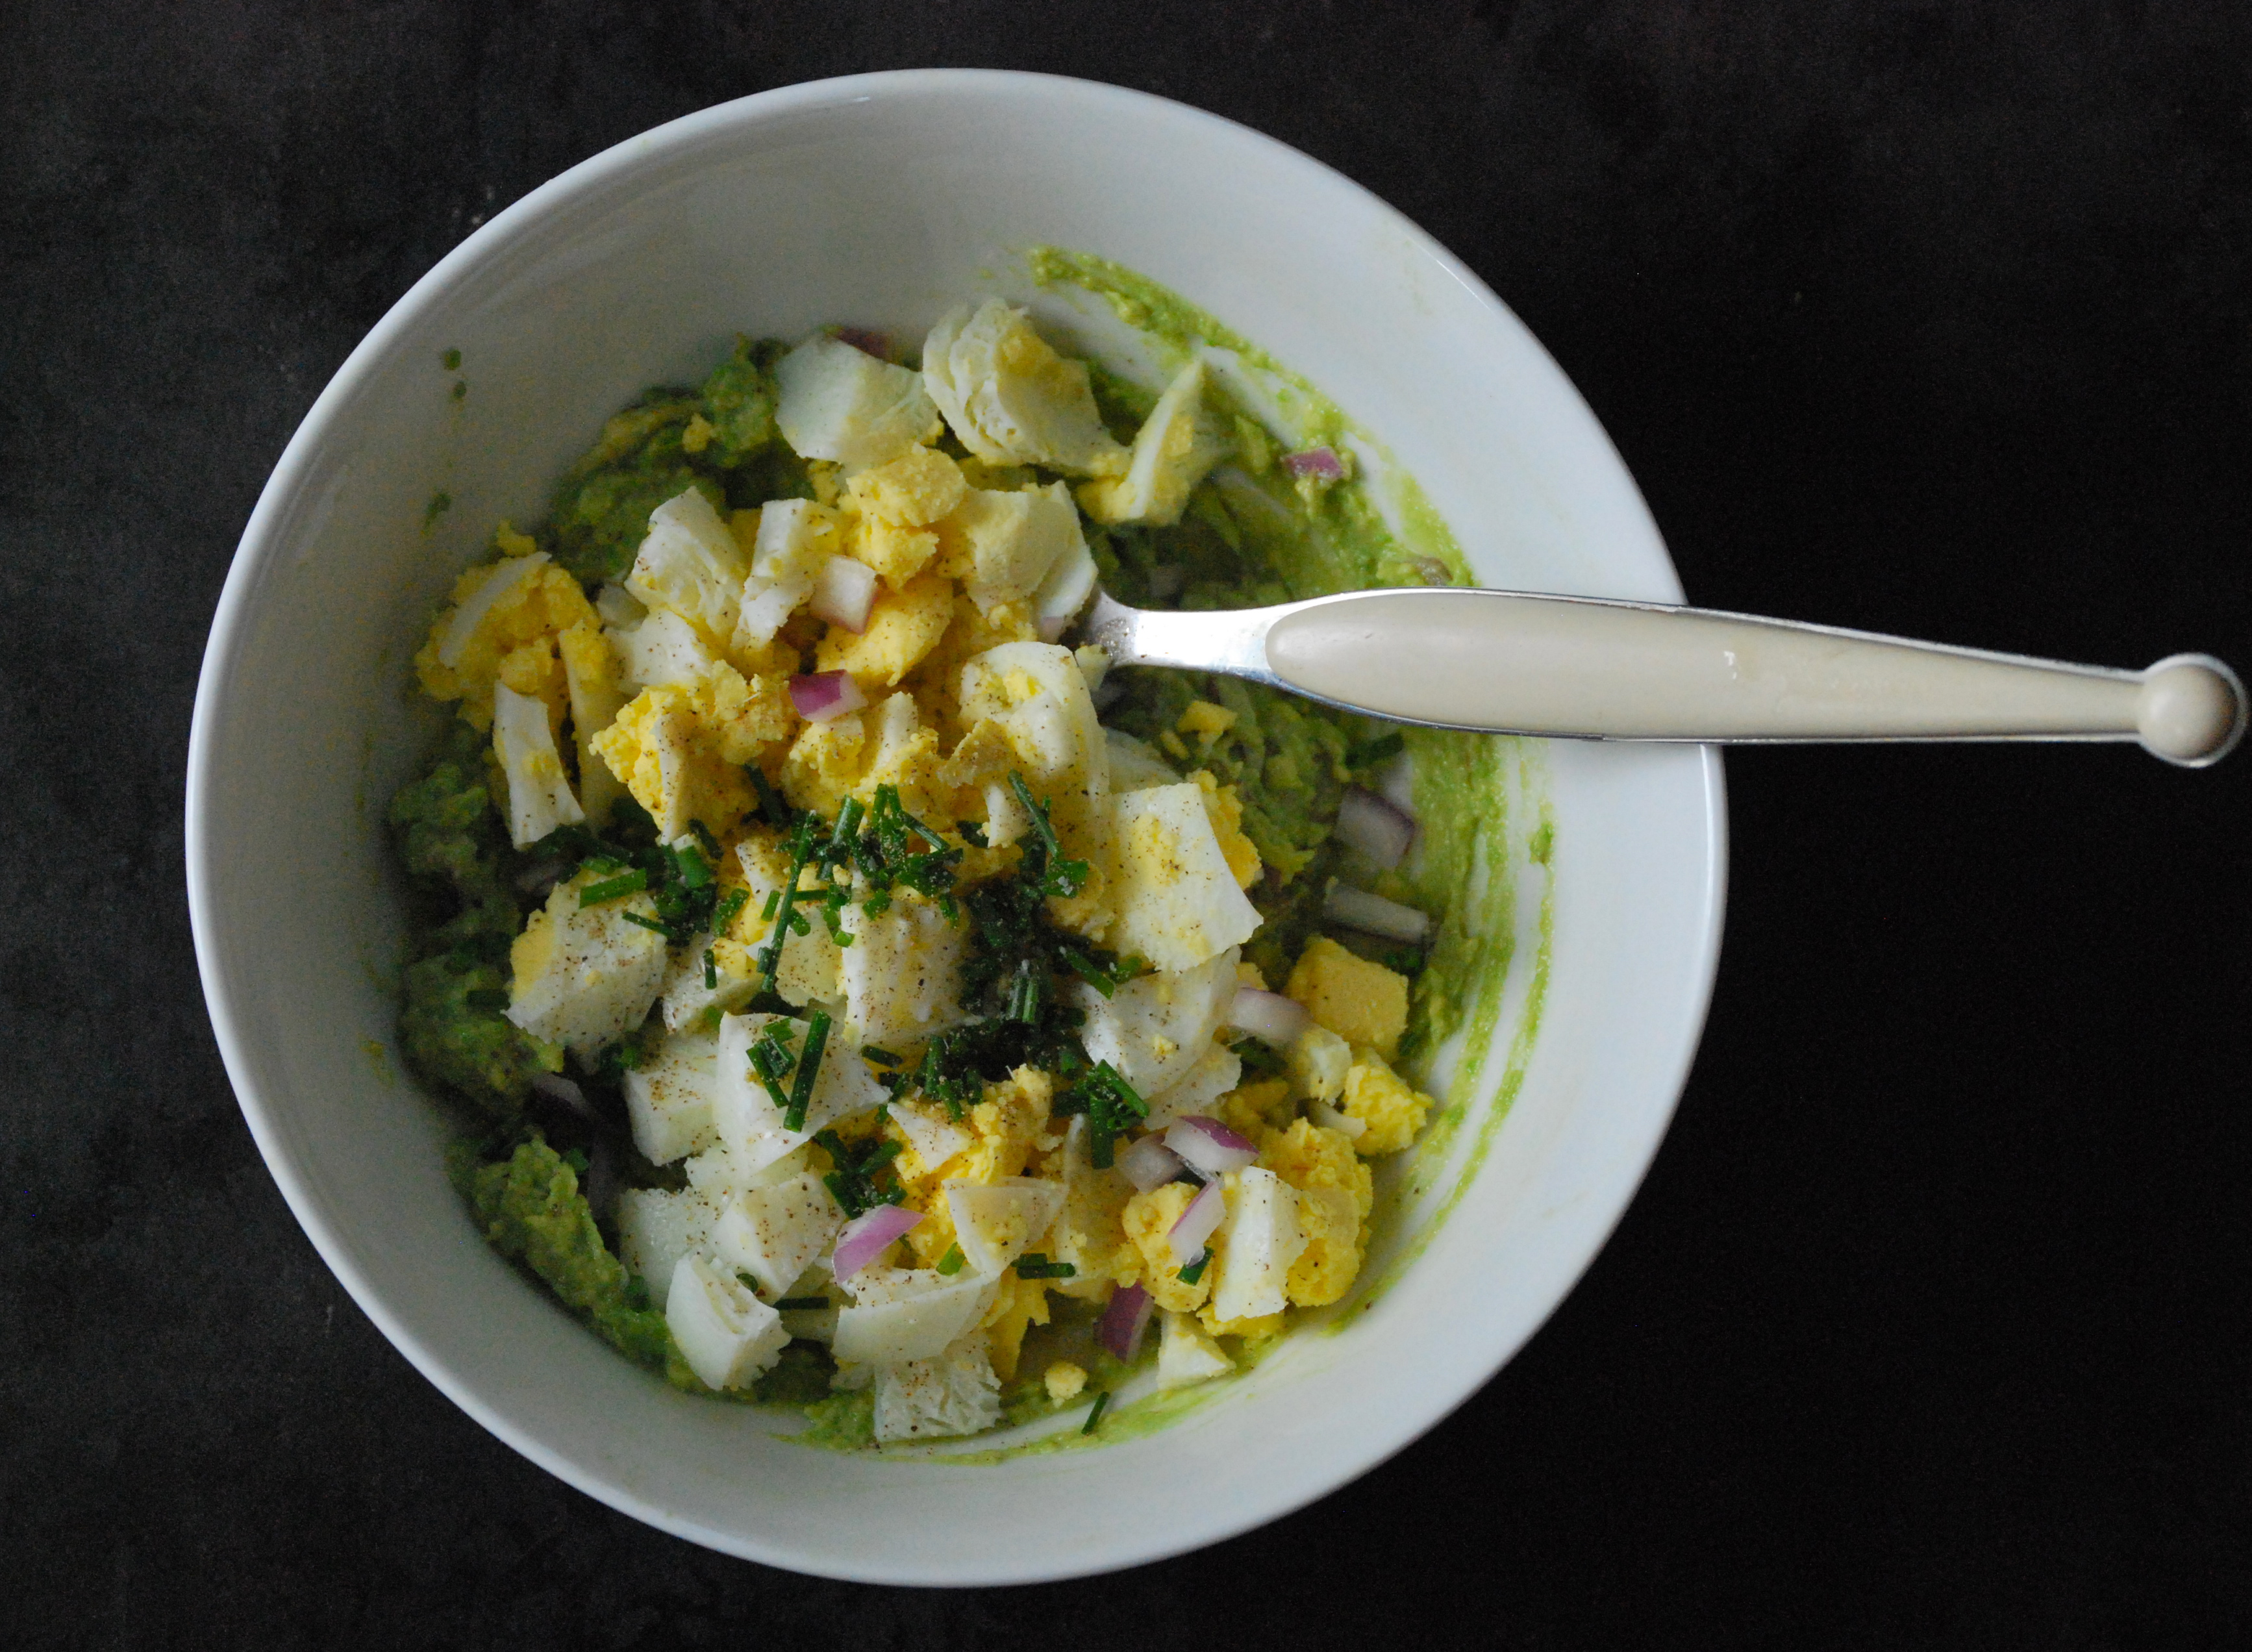 Avocado Egg Salad | Relishing It